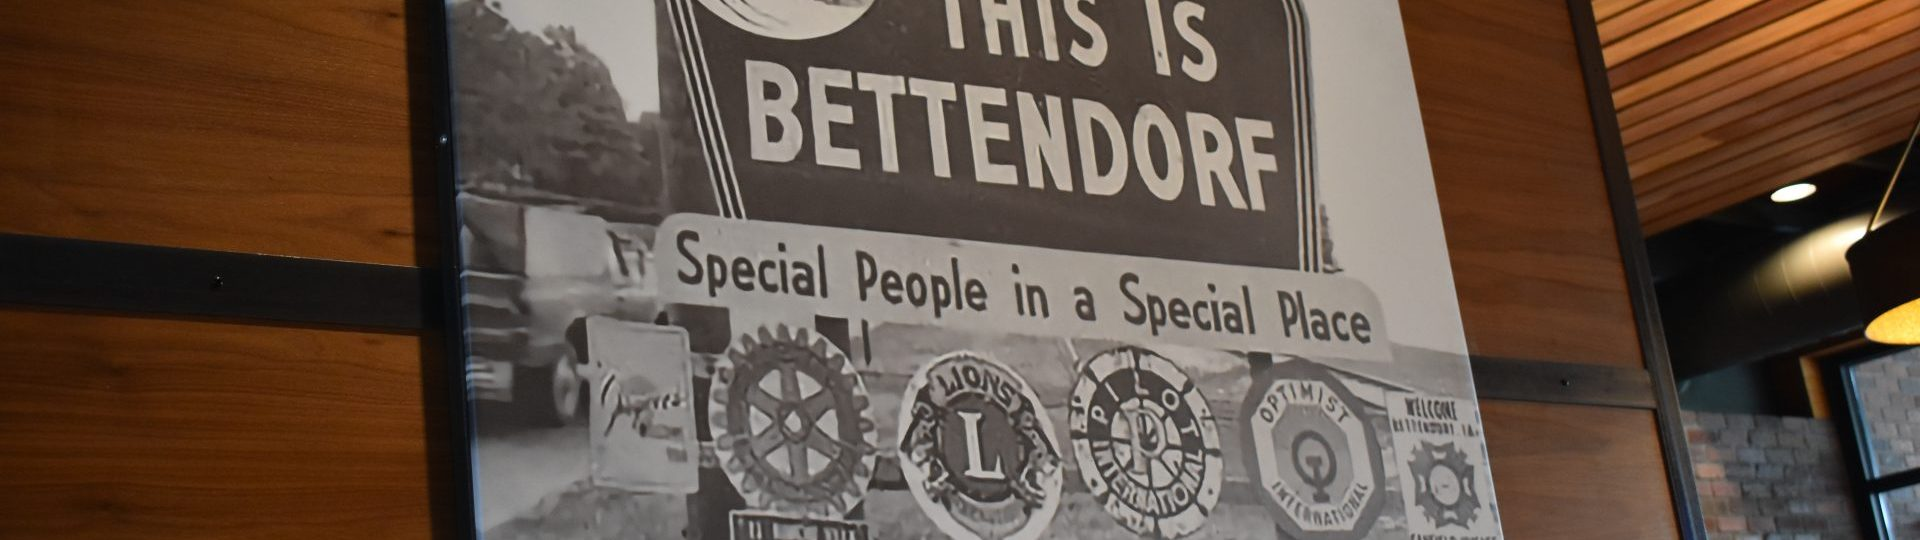 Old photo of This is Bettendorf town welcome sign.